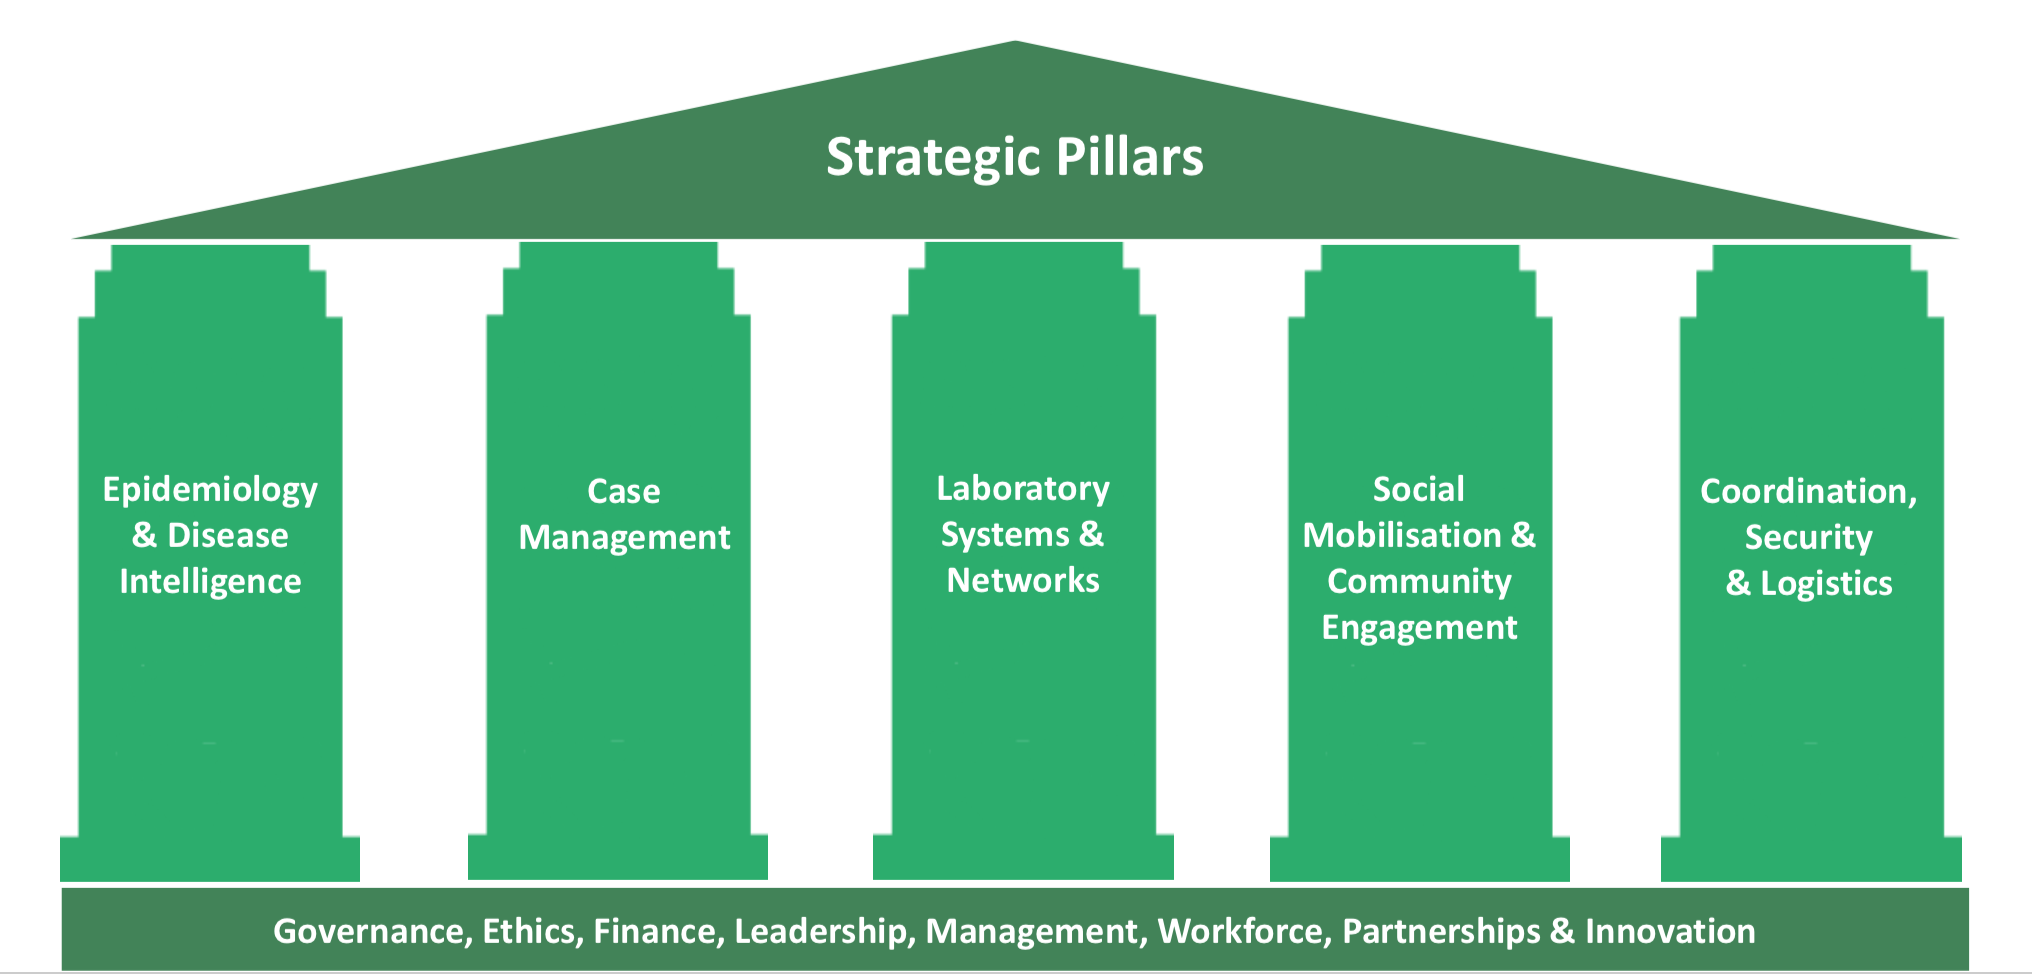 """""""A green cartoon image of five pillars under a roof. The text inside the roof says """"Strategic Pillars"""". The text in the pillars from left to right reads: """"Epidemiology & Disease Intelligence"""", """"Case Management"""", """"Laboratory Systems & Networks"""", """"Social Mobilization & Community Engagement"""" and """"Coordination, Security & Logistics"""". The pillars are stranding on a green rectangle with the text """"Governance, Ethics, Finance, Leadership, Management, Workforce, Partnerships & Innovation""""."""